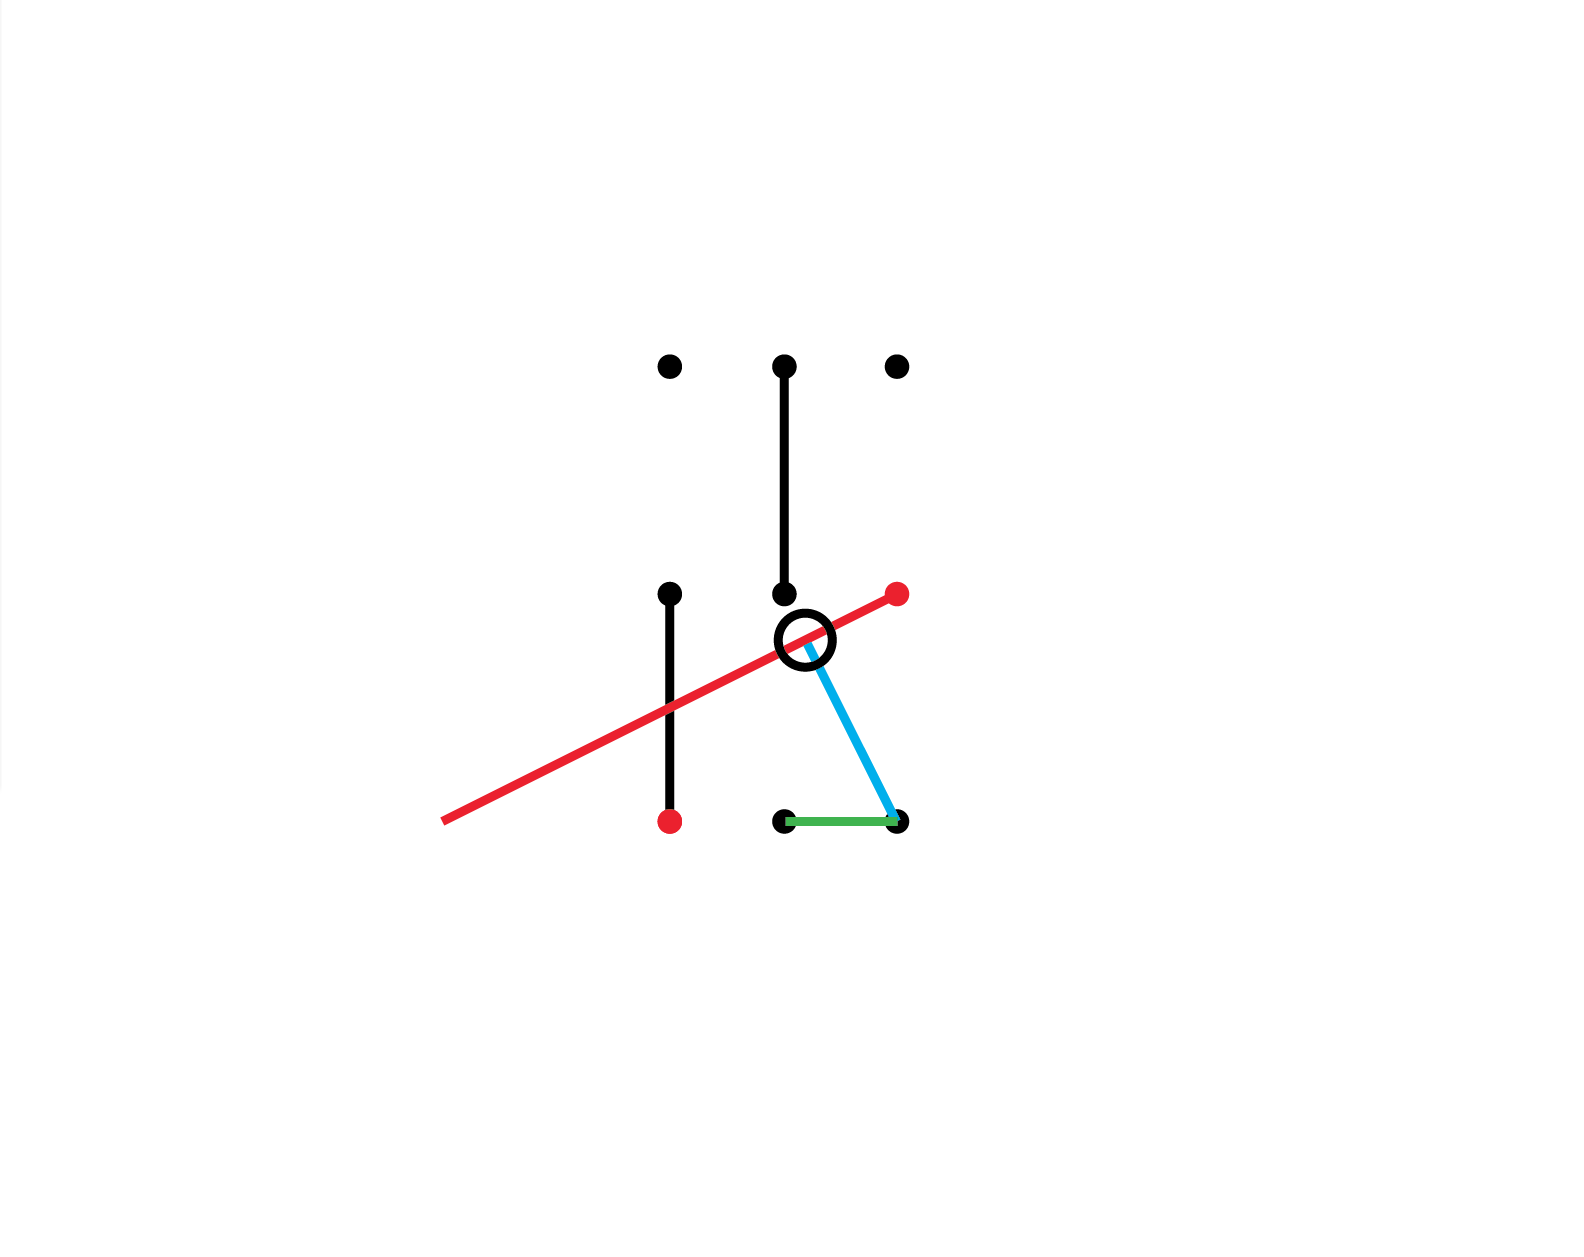 31 a decision is made to horizontally compress the composition, the relationships between the two red points the grren line and the small circle has been lost